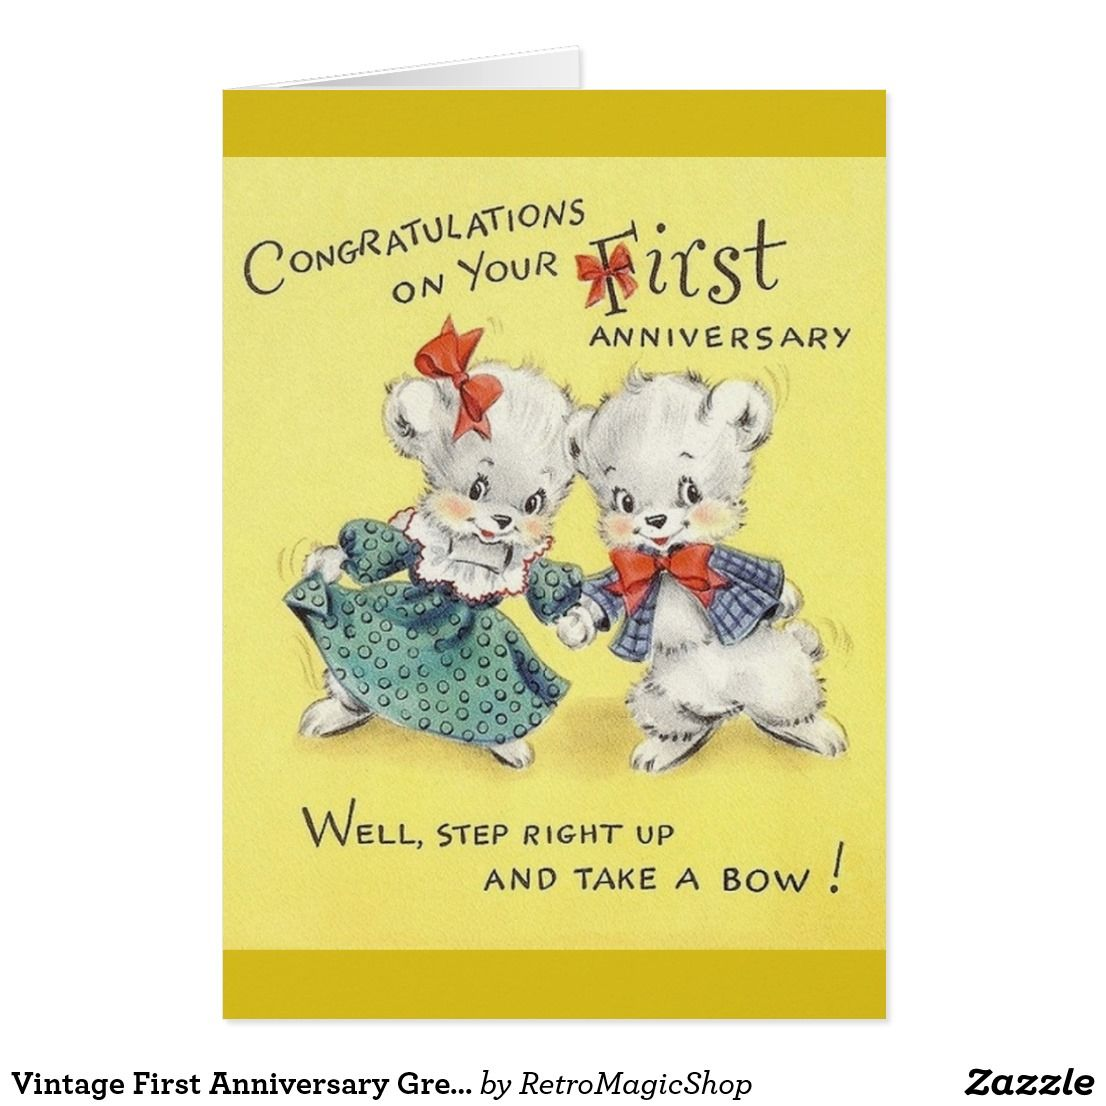 Vintage first anniversary greeting card vintage anniversary vintage first anniversary greeting card kristyandbryce Images